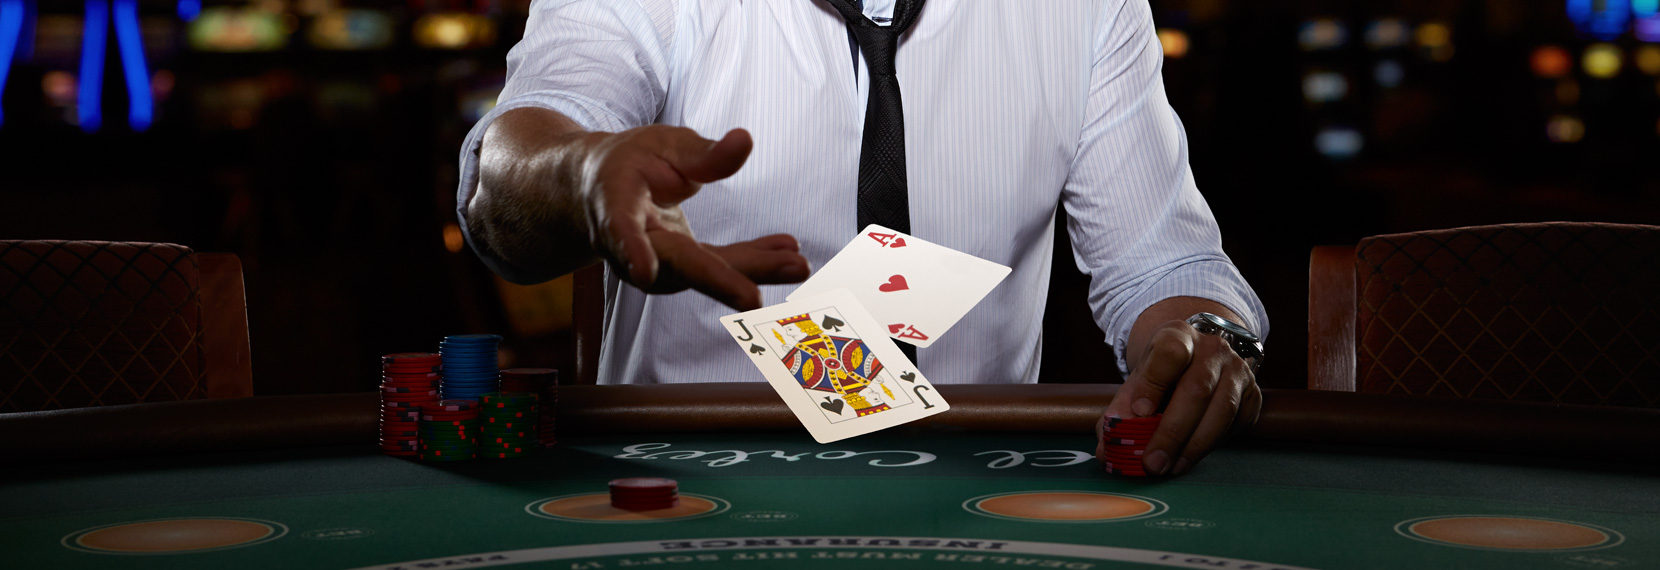 How to make money roulette system